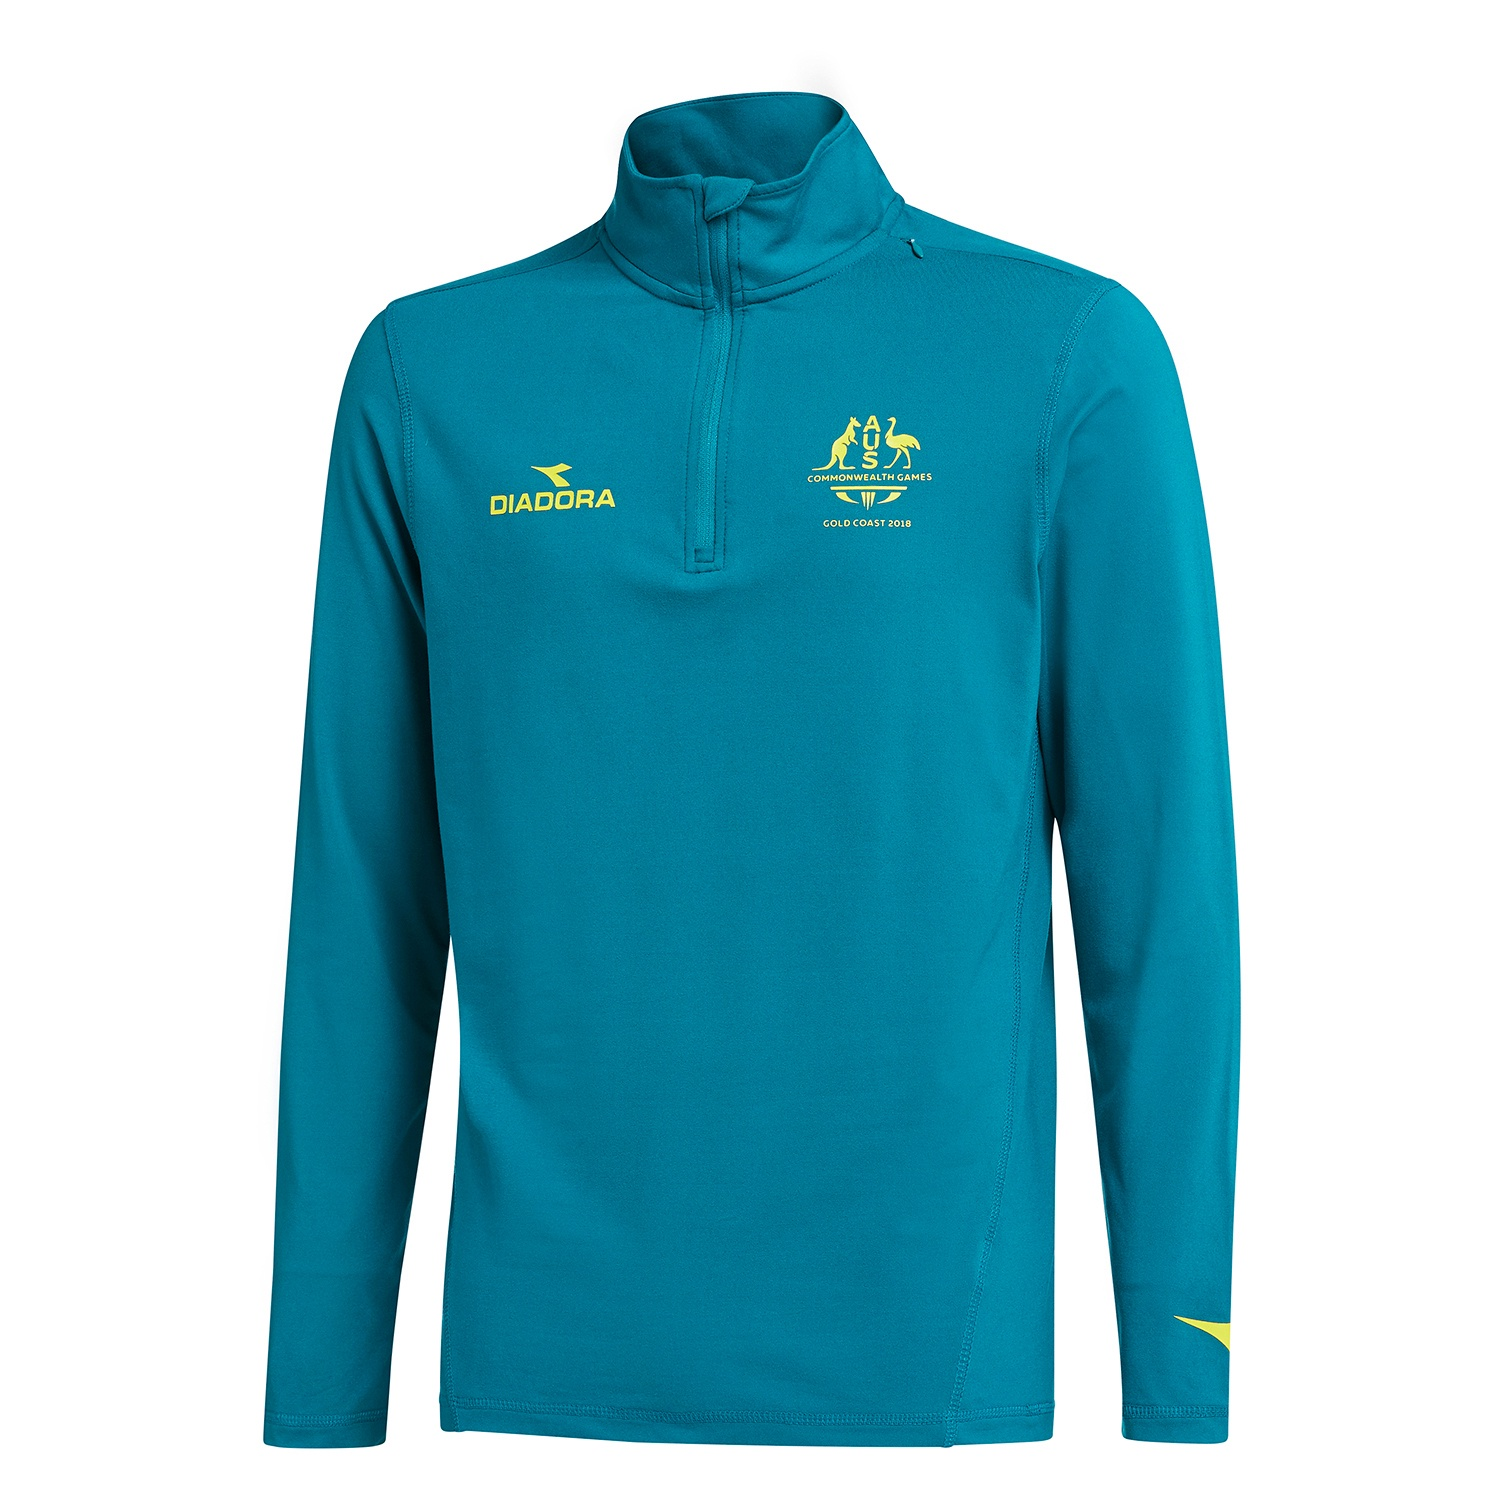 Team Australia Men's 1/4 Zip Top